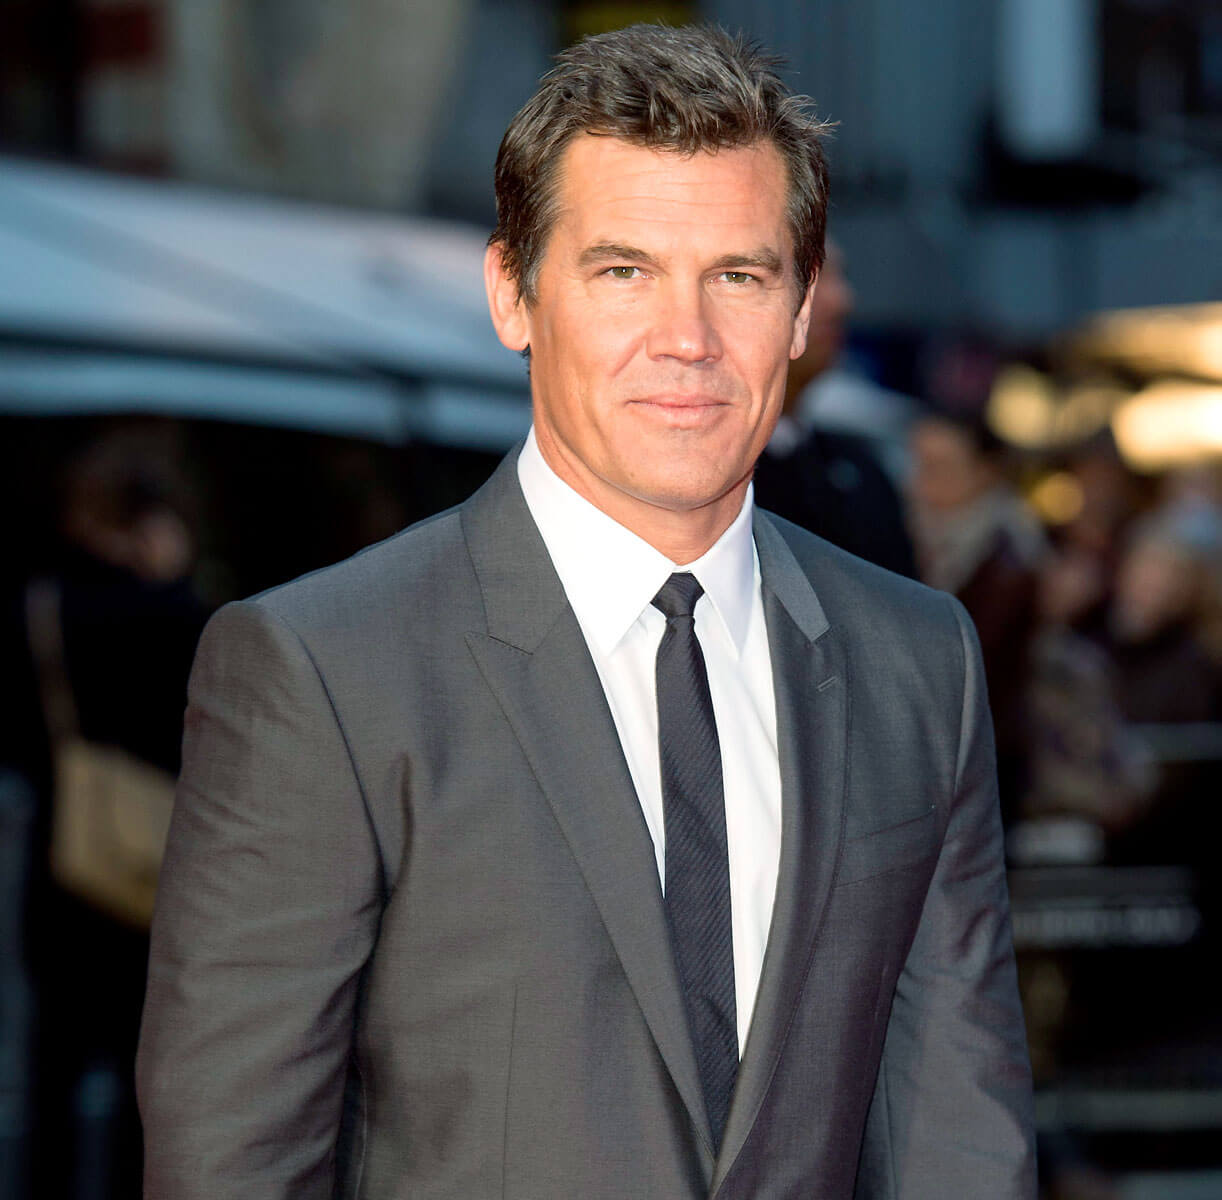 Josh Brolin Movies, Thanos, Height, Net Worth, Wife, Age, Mother, Kids, Haircut, Images, Daughter, Birthday, Biography, Married, Awards, Instagram, Imdb, Wiki, Facebook, Twitter (4) (1)class=